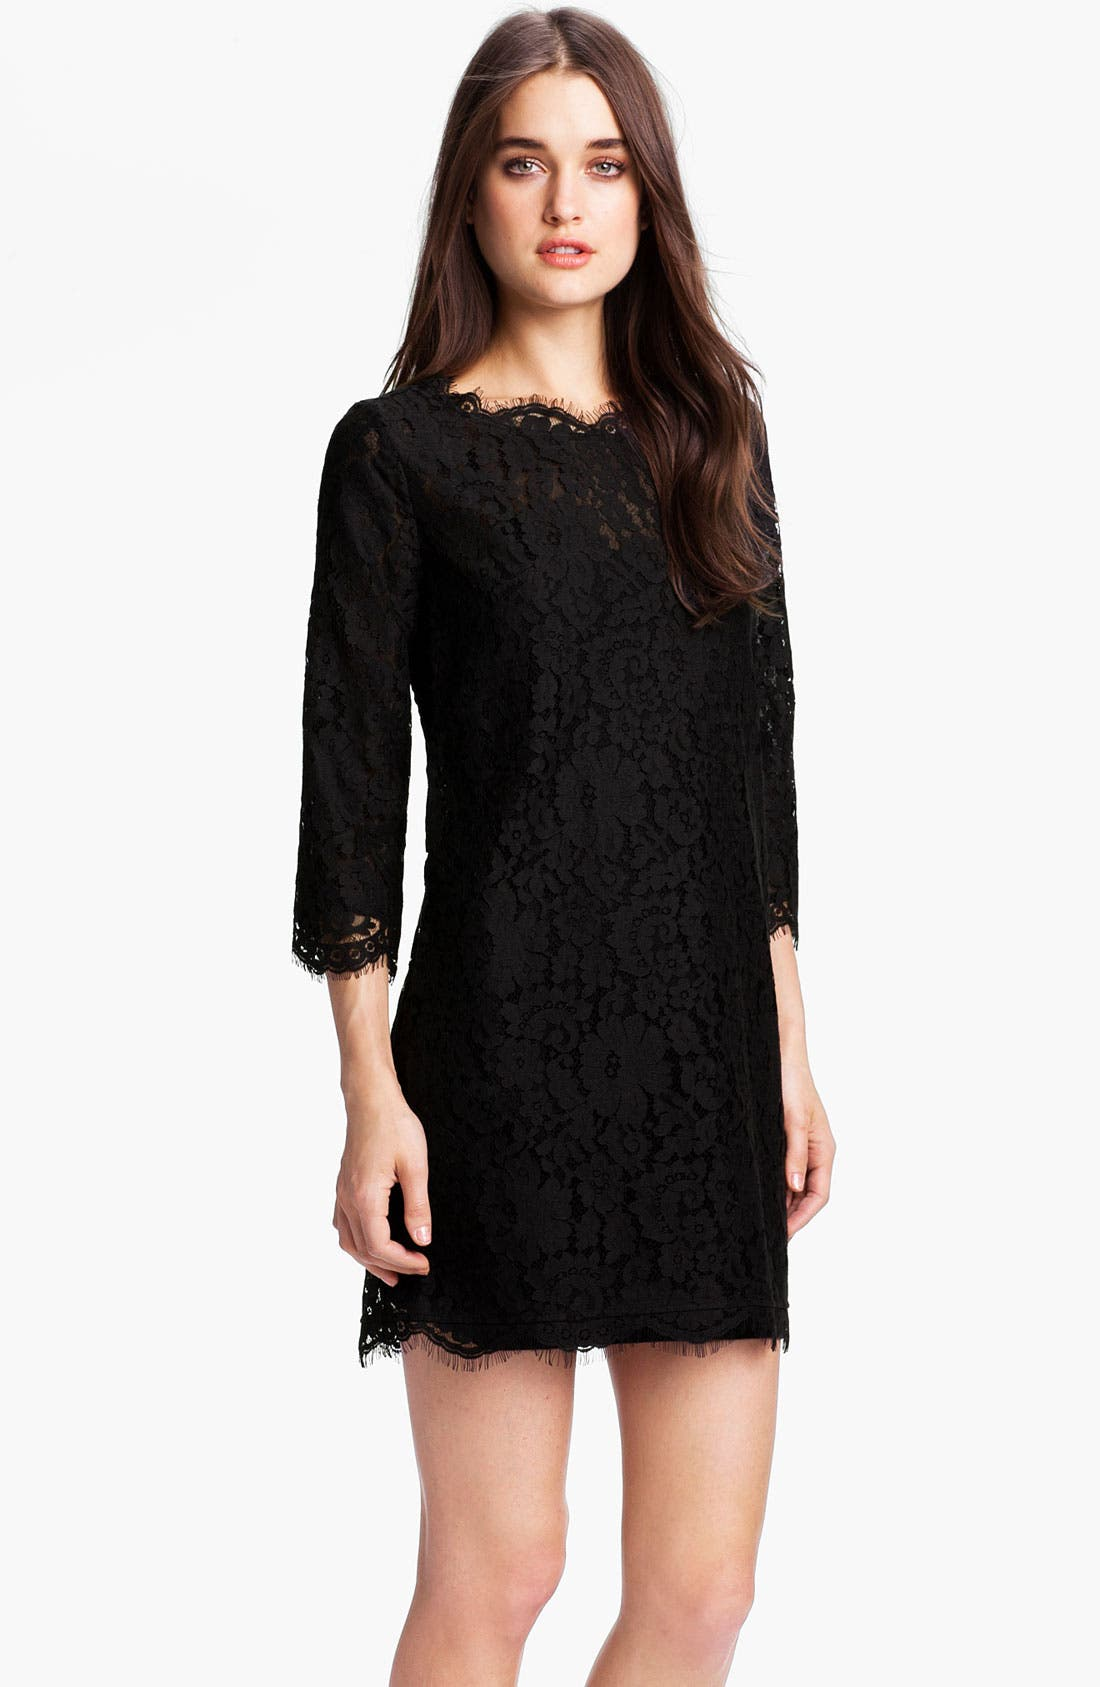 Alternate Image 1 Selected - Joie 'Portia' Lace Dress